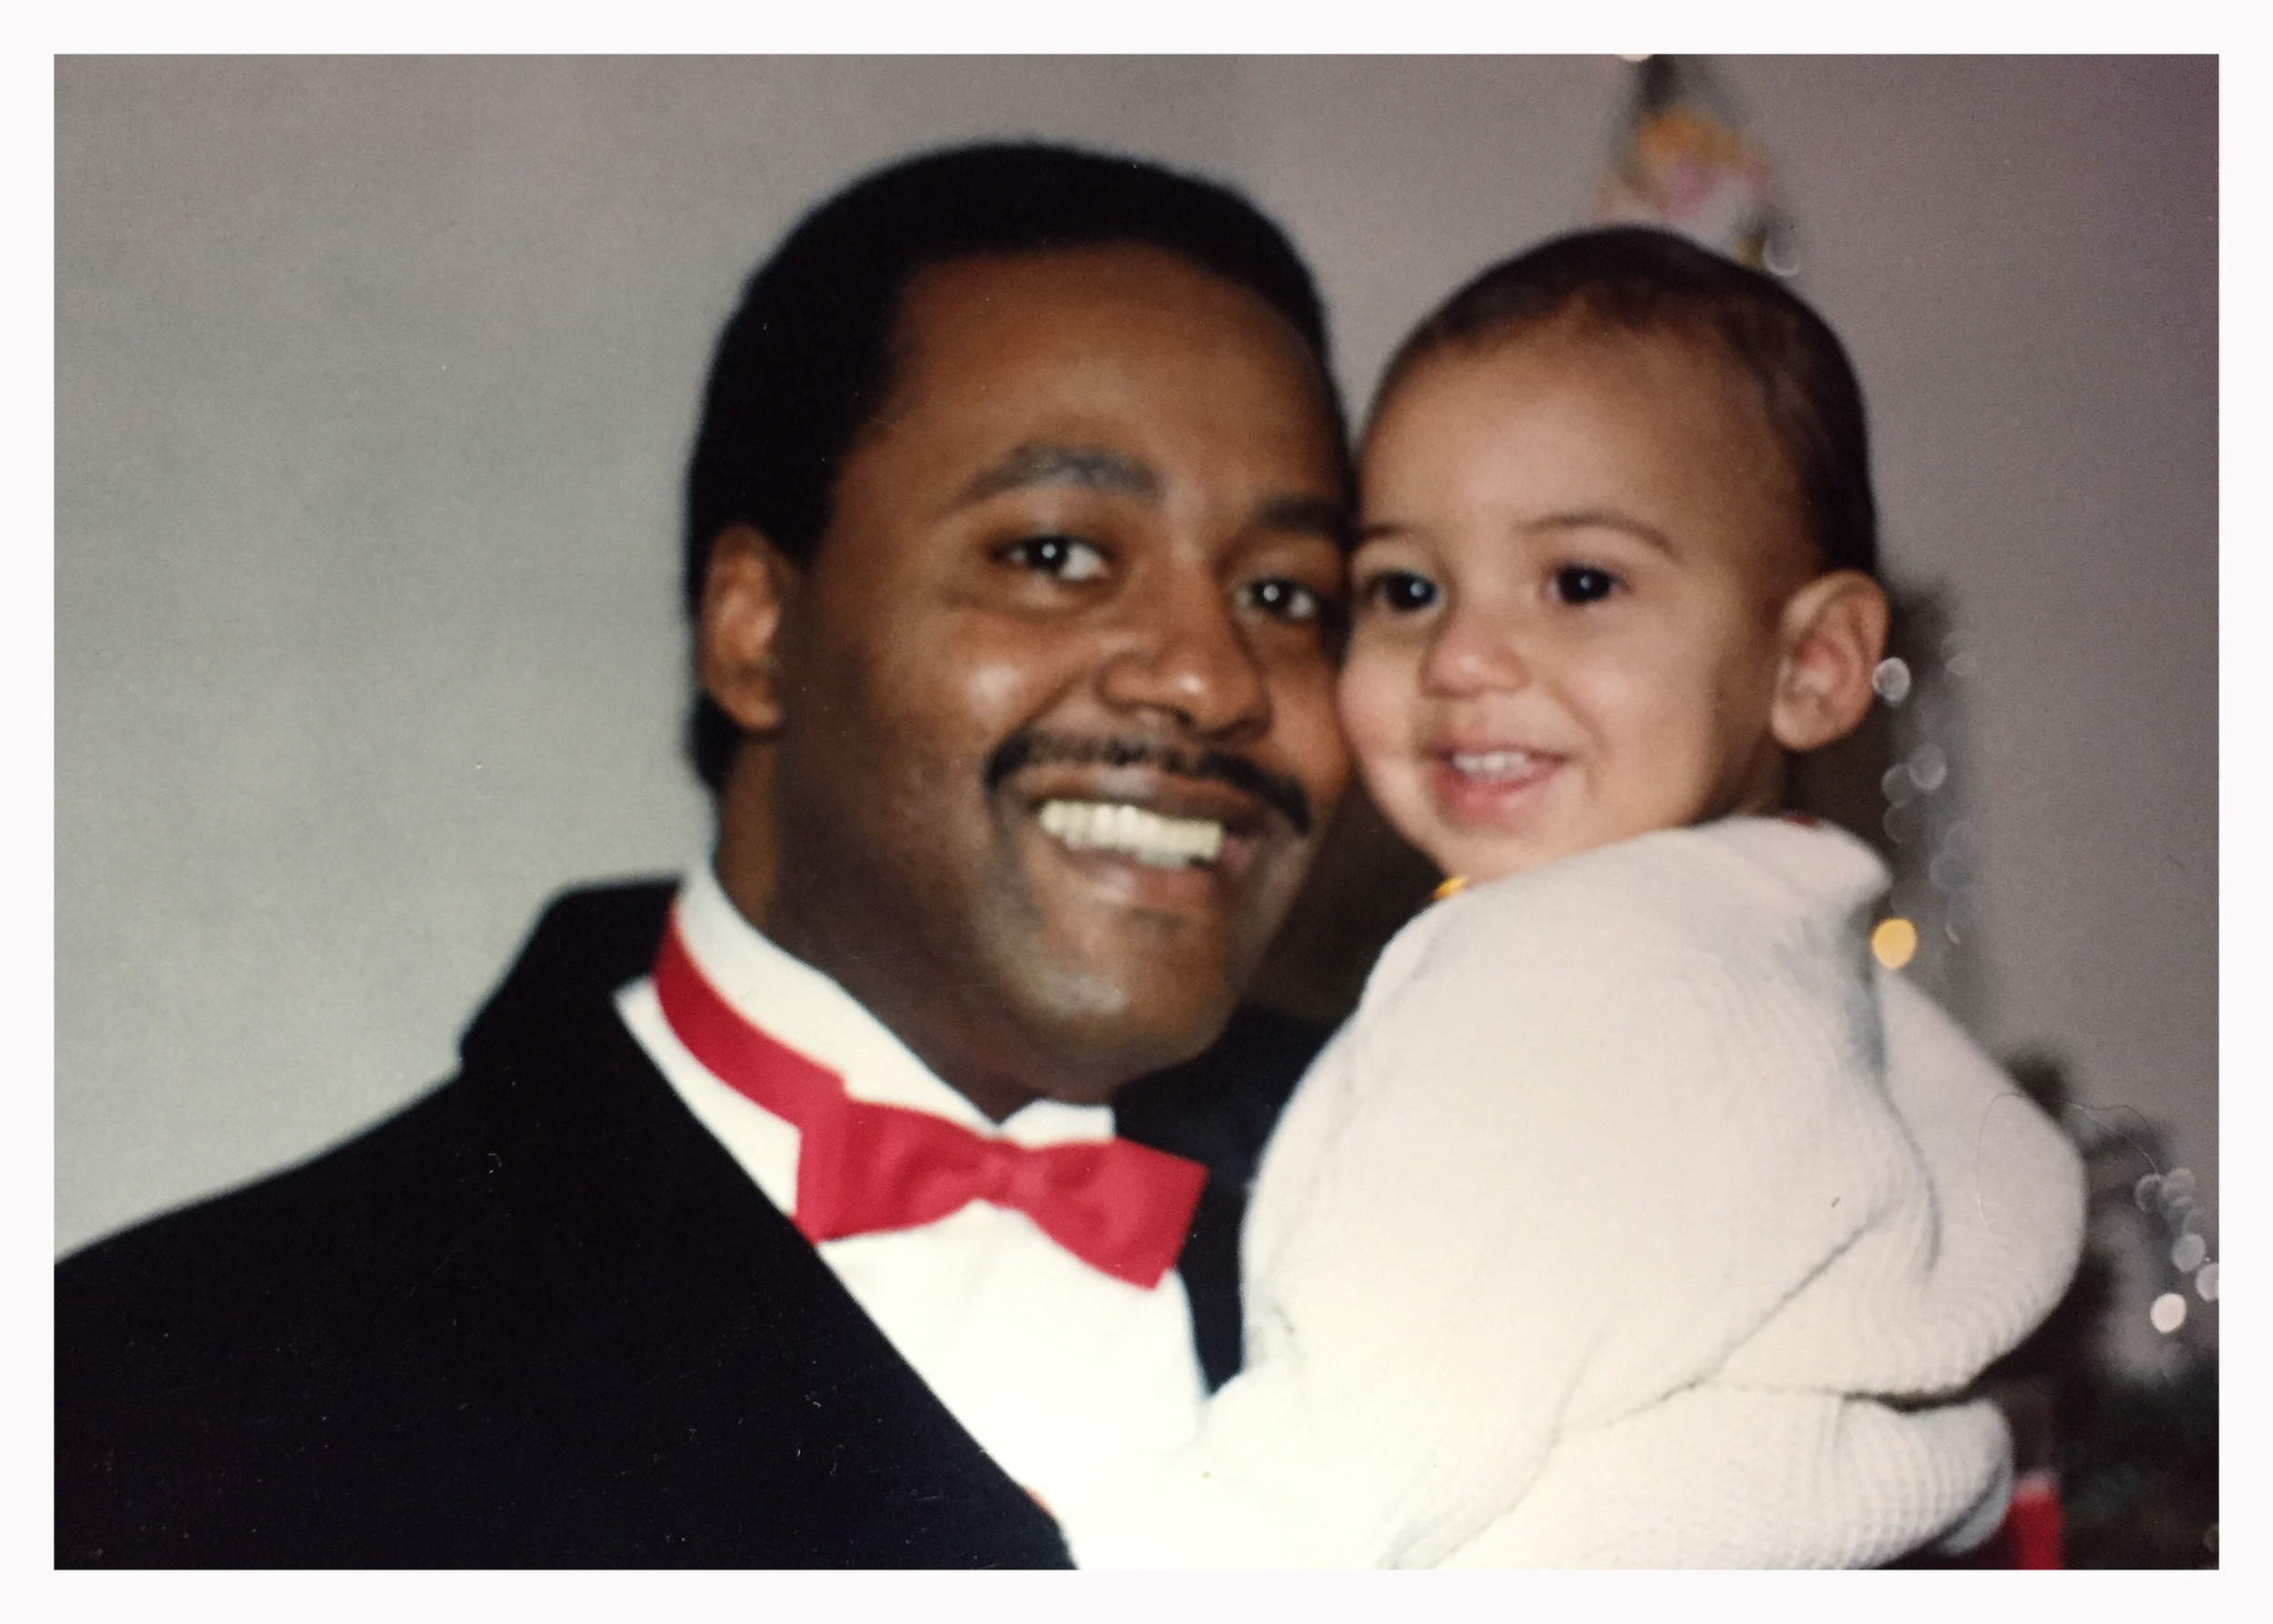 Isaiah and his father c 1985.